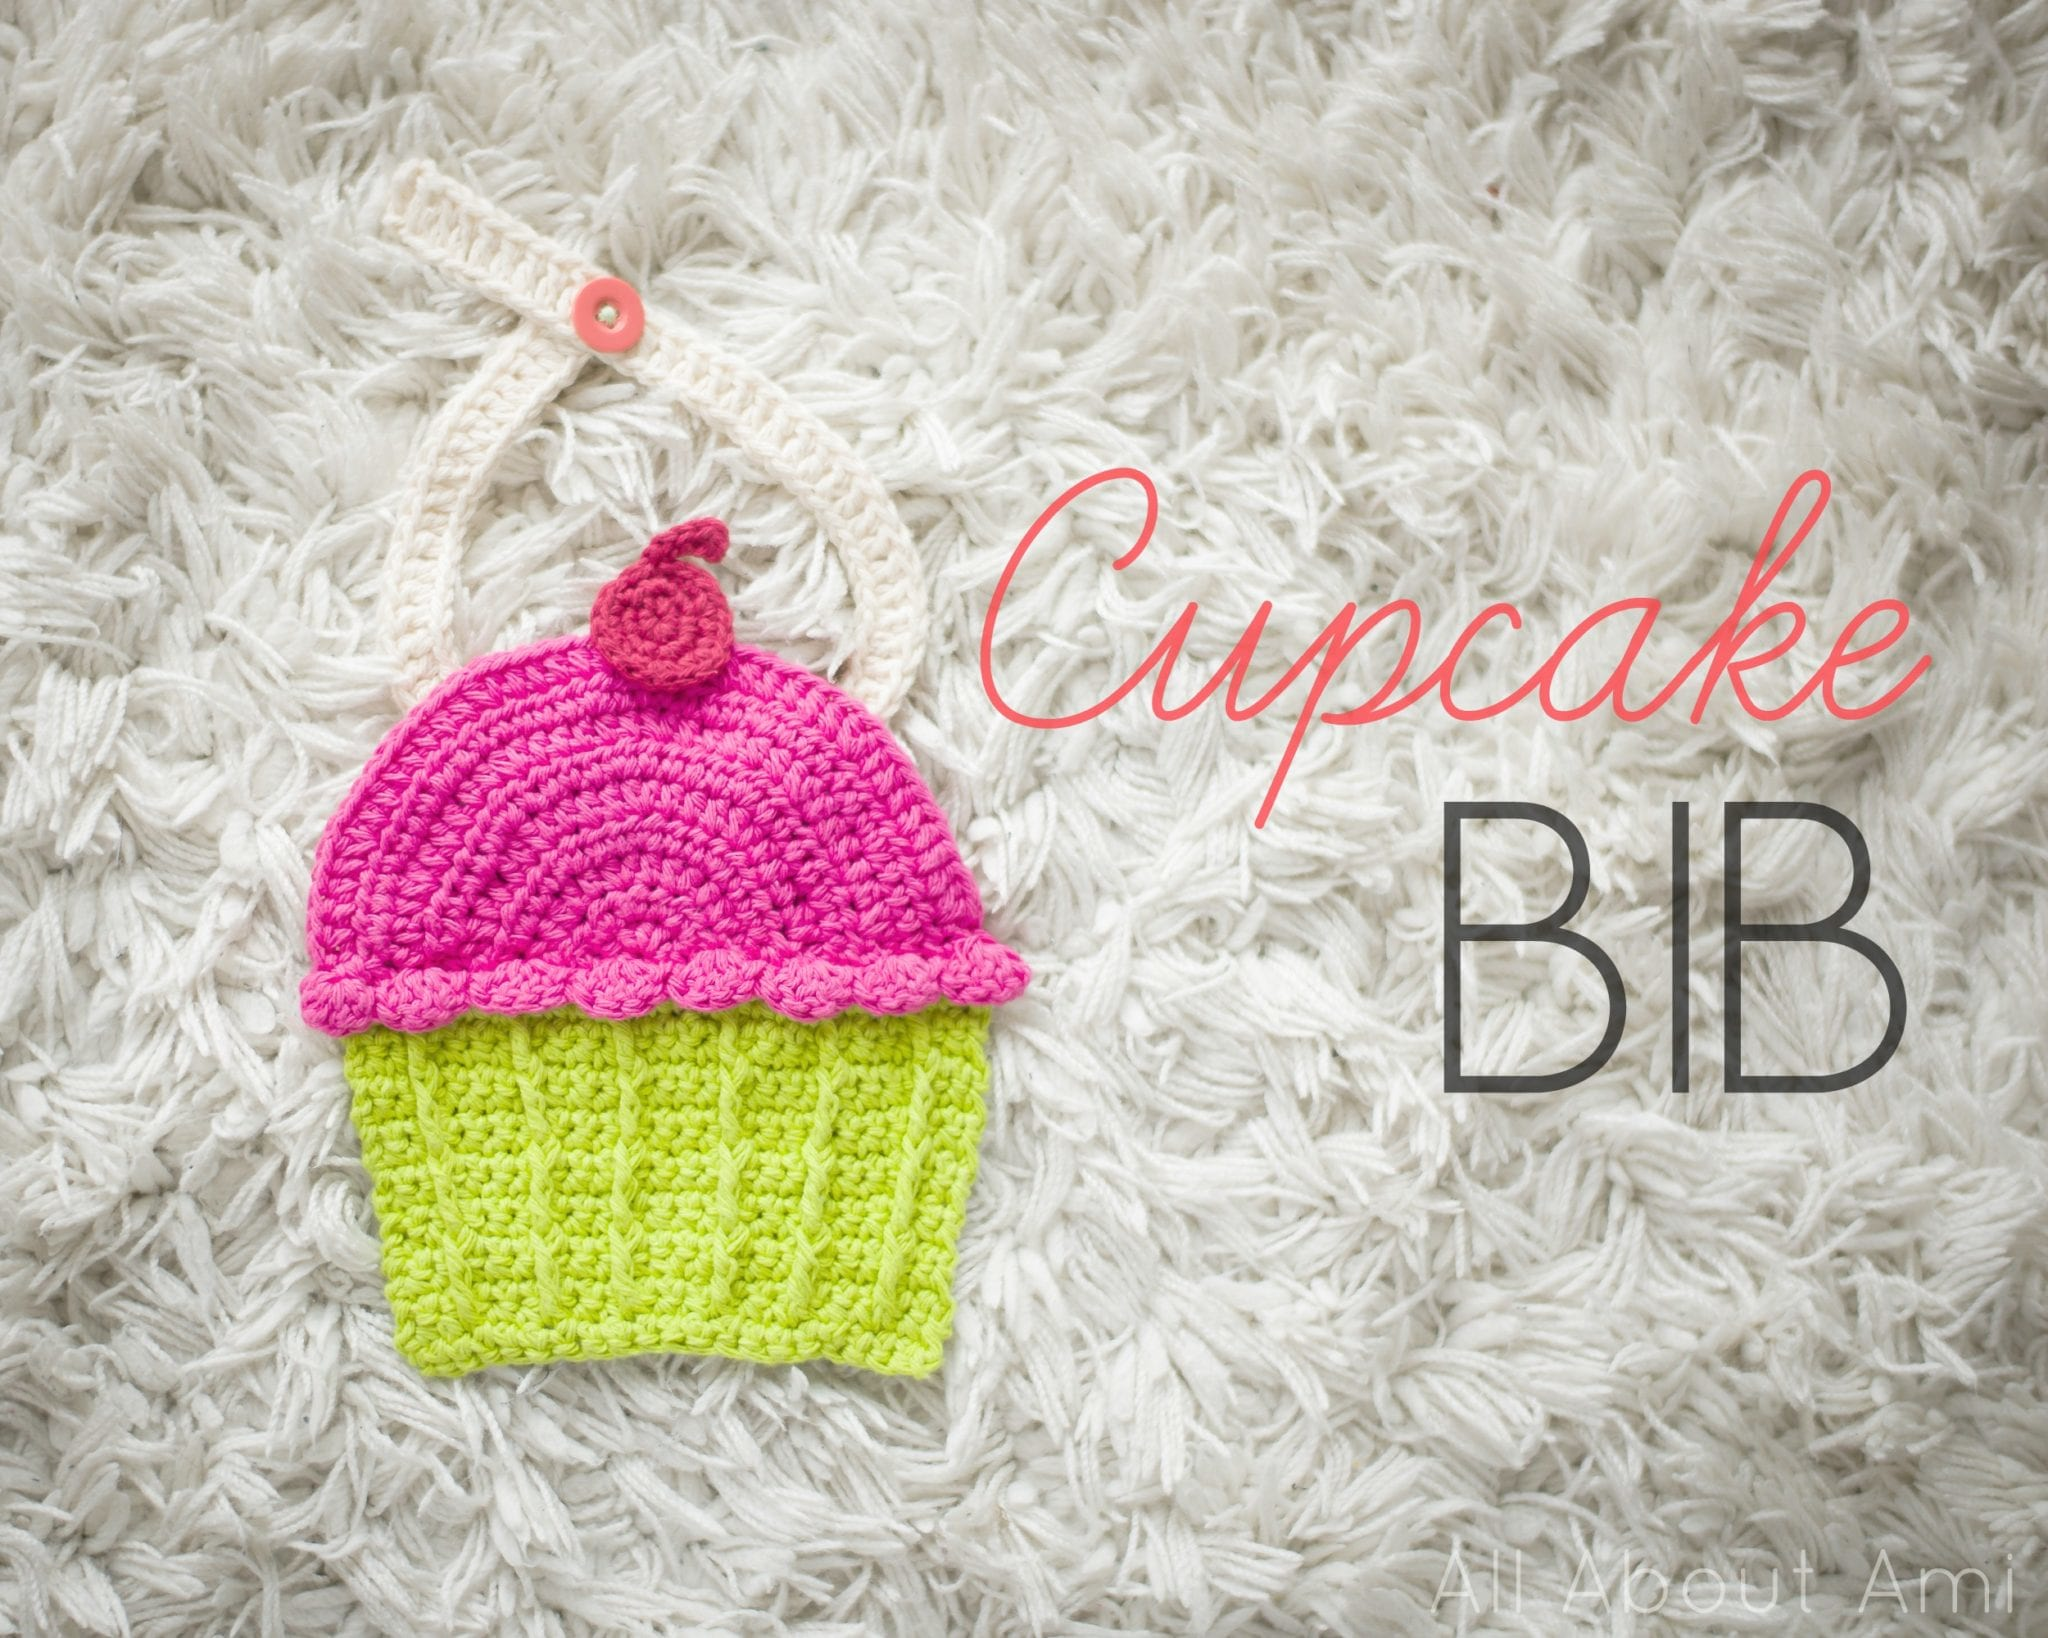 search results for \'cupcake crochet\' | craftgawker